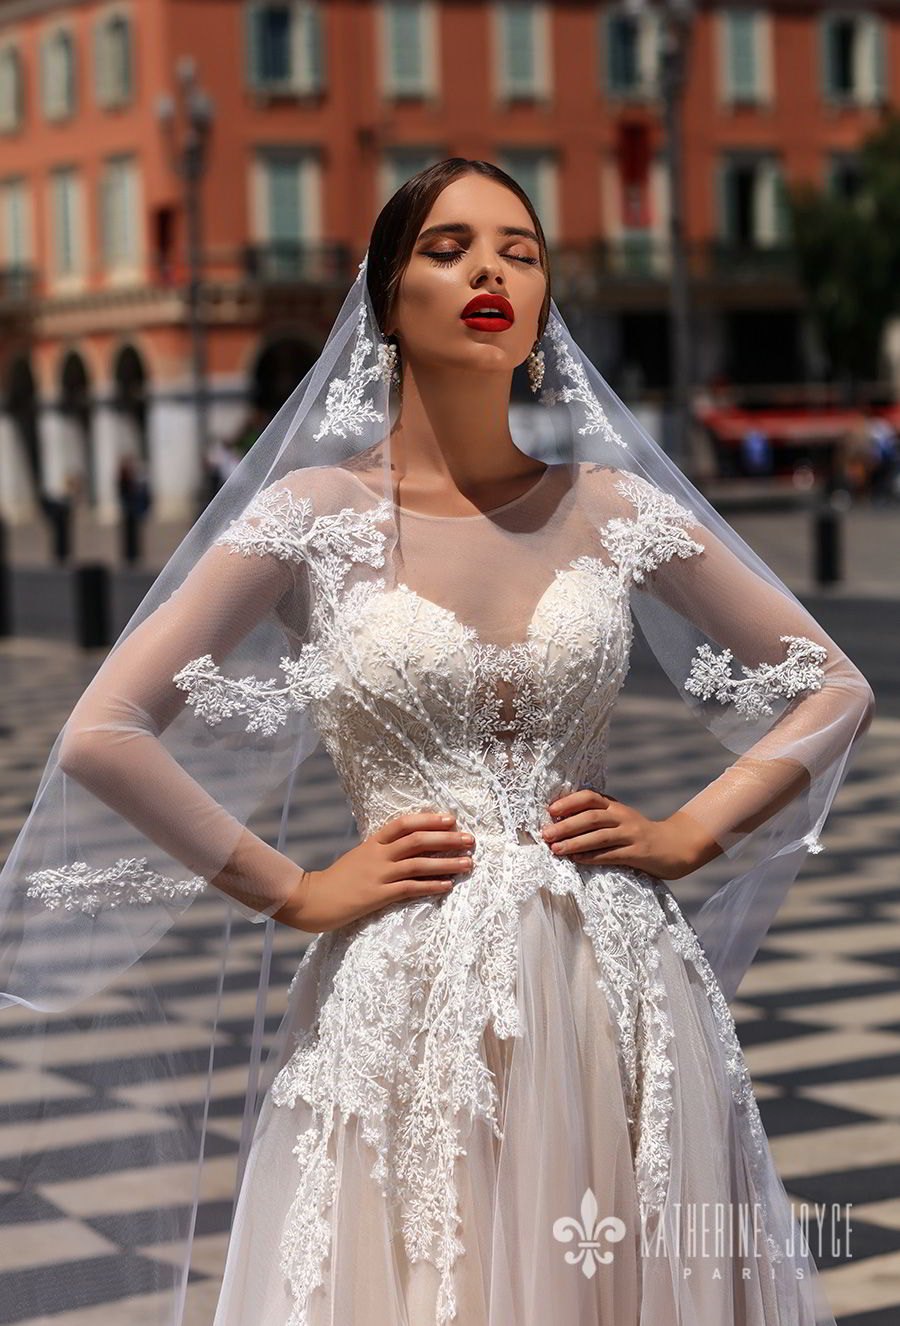 katherine joyce 2018 bridal long sleeves sheer jewel neck sweetheart neckline heavily embellished bodice tulle skirt romantic blush a  line wedding dress sheer back chapel train (dolores) zv